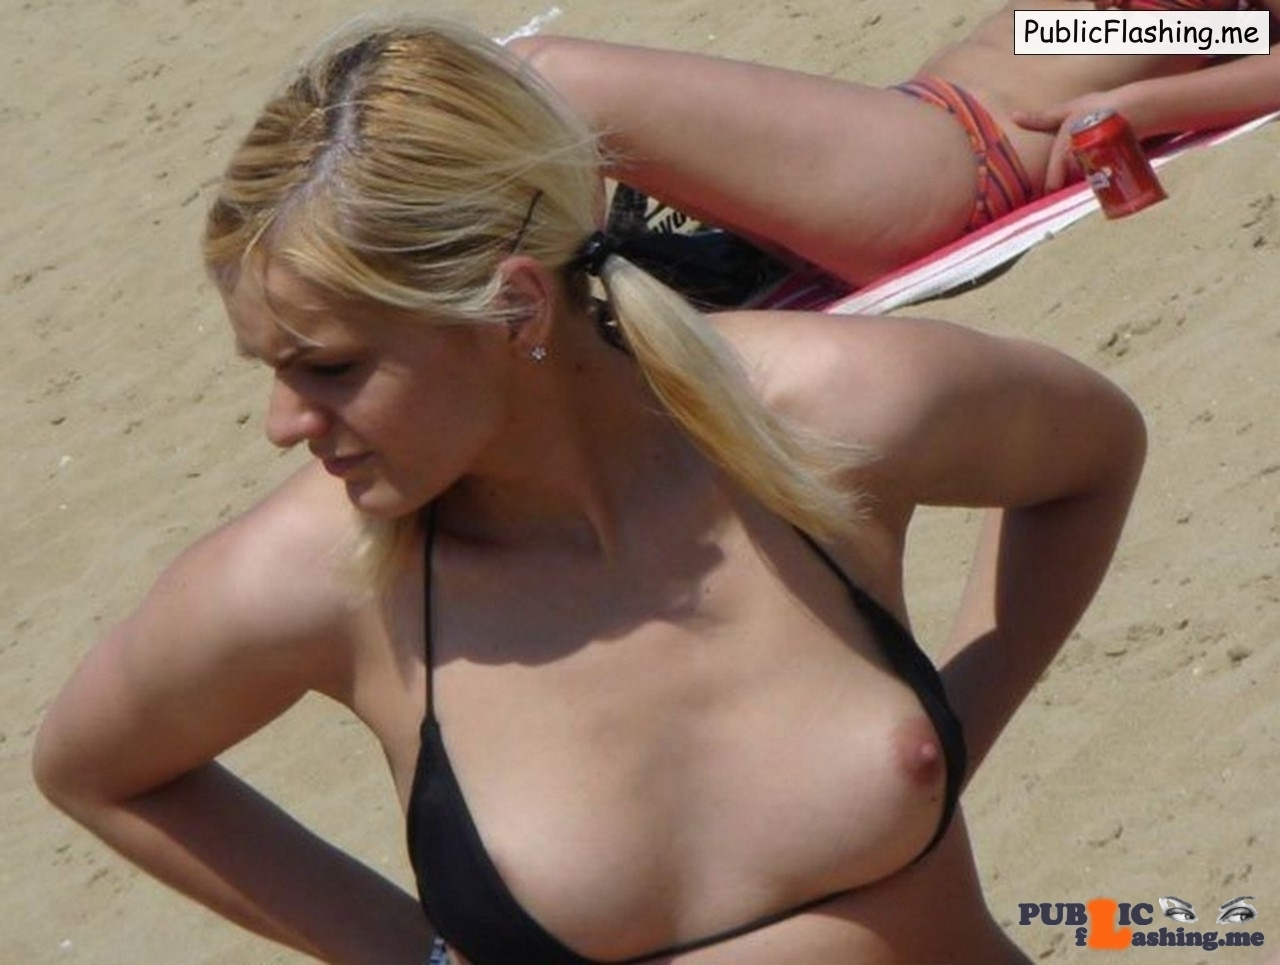 nipple slip beach amateur